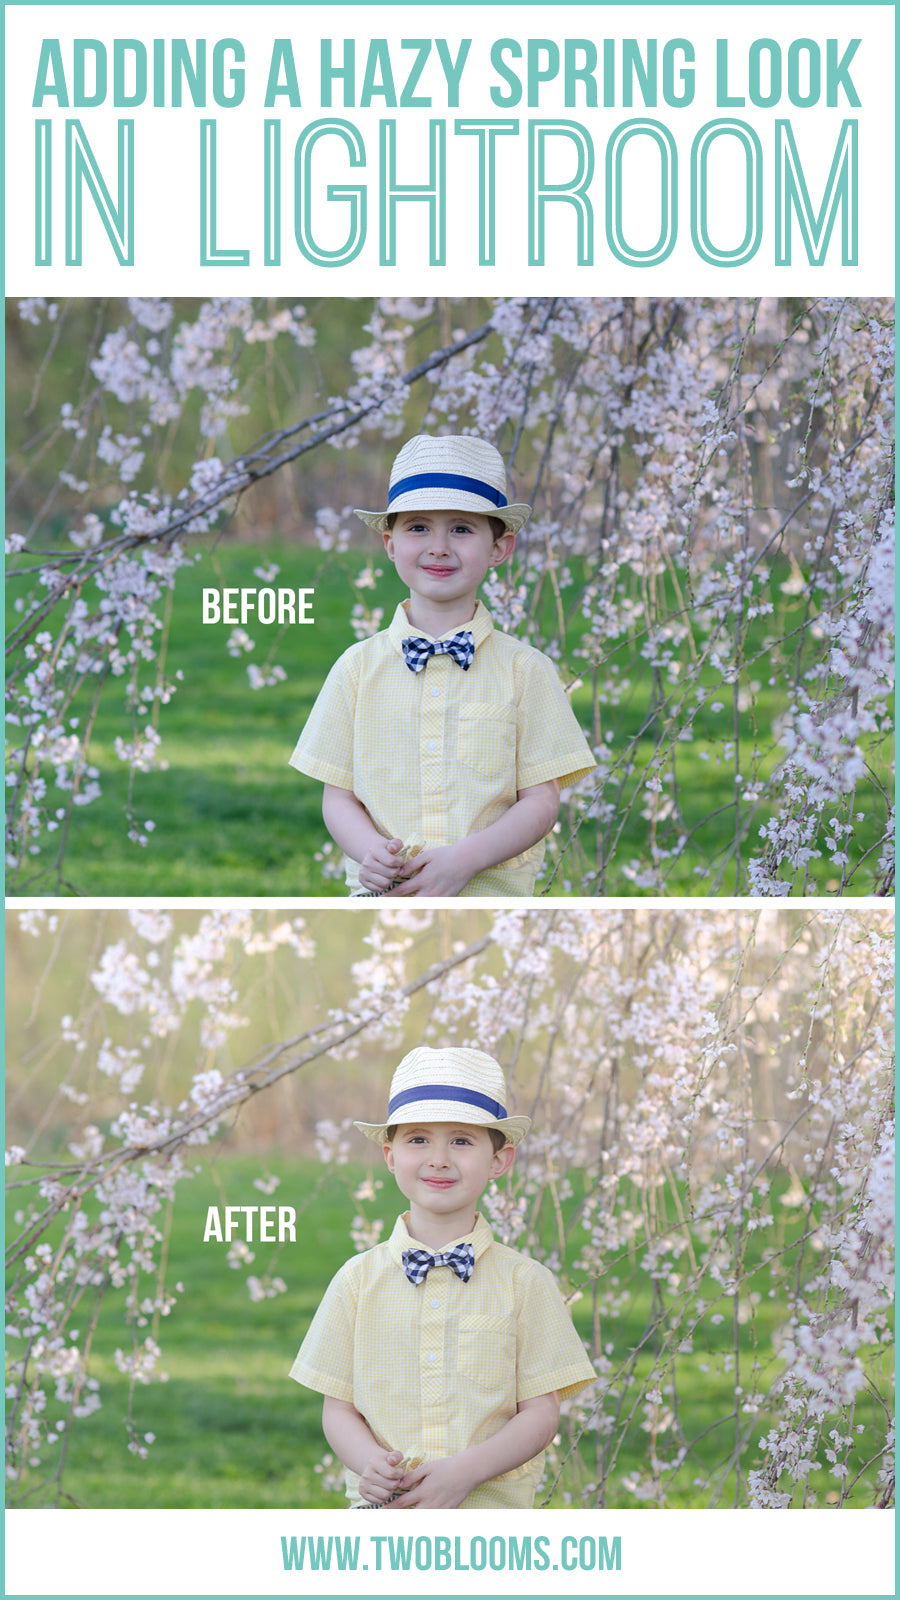 adding a hazy spring look in Lightroom